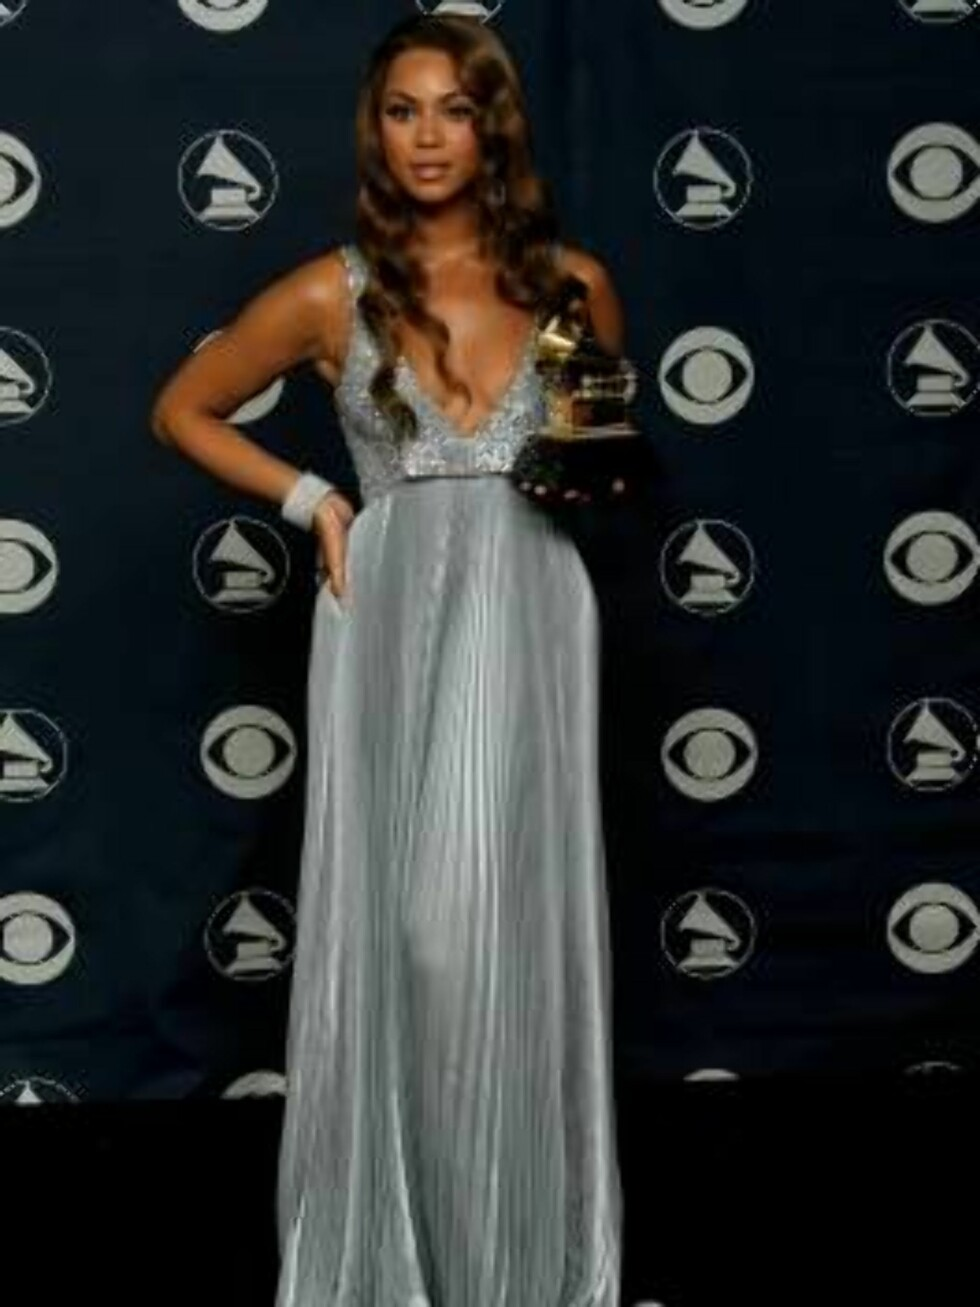 """LOS ANGELES, CA - FEBRUARY 11:  Singer Beyonce Knowles poses with her Grammy for Best Contemporary R&B Album for """"B'Day"""" in the press room at the 49th Annual Grammy Awards at the Staples Center on February 11, 2007 in Los Angeles, California.  (Photo by V Foto: All Over Press"""